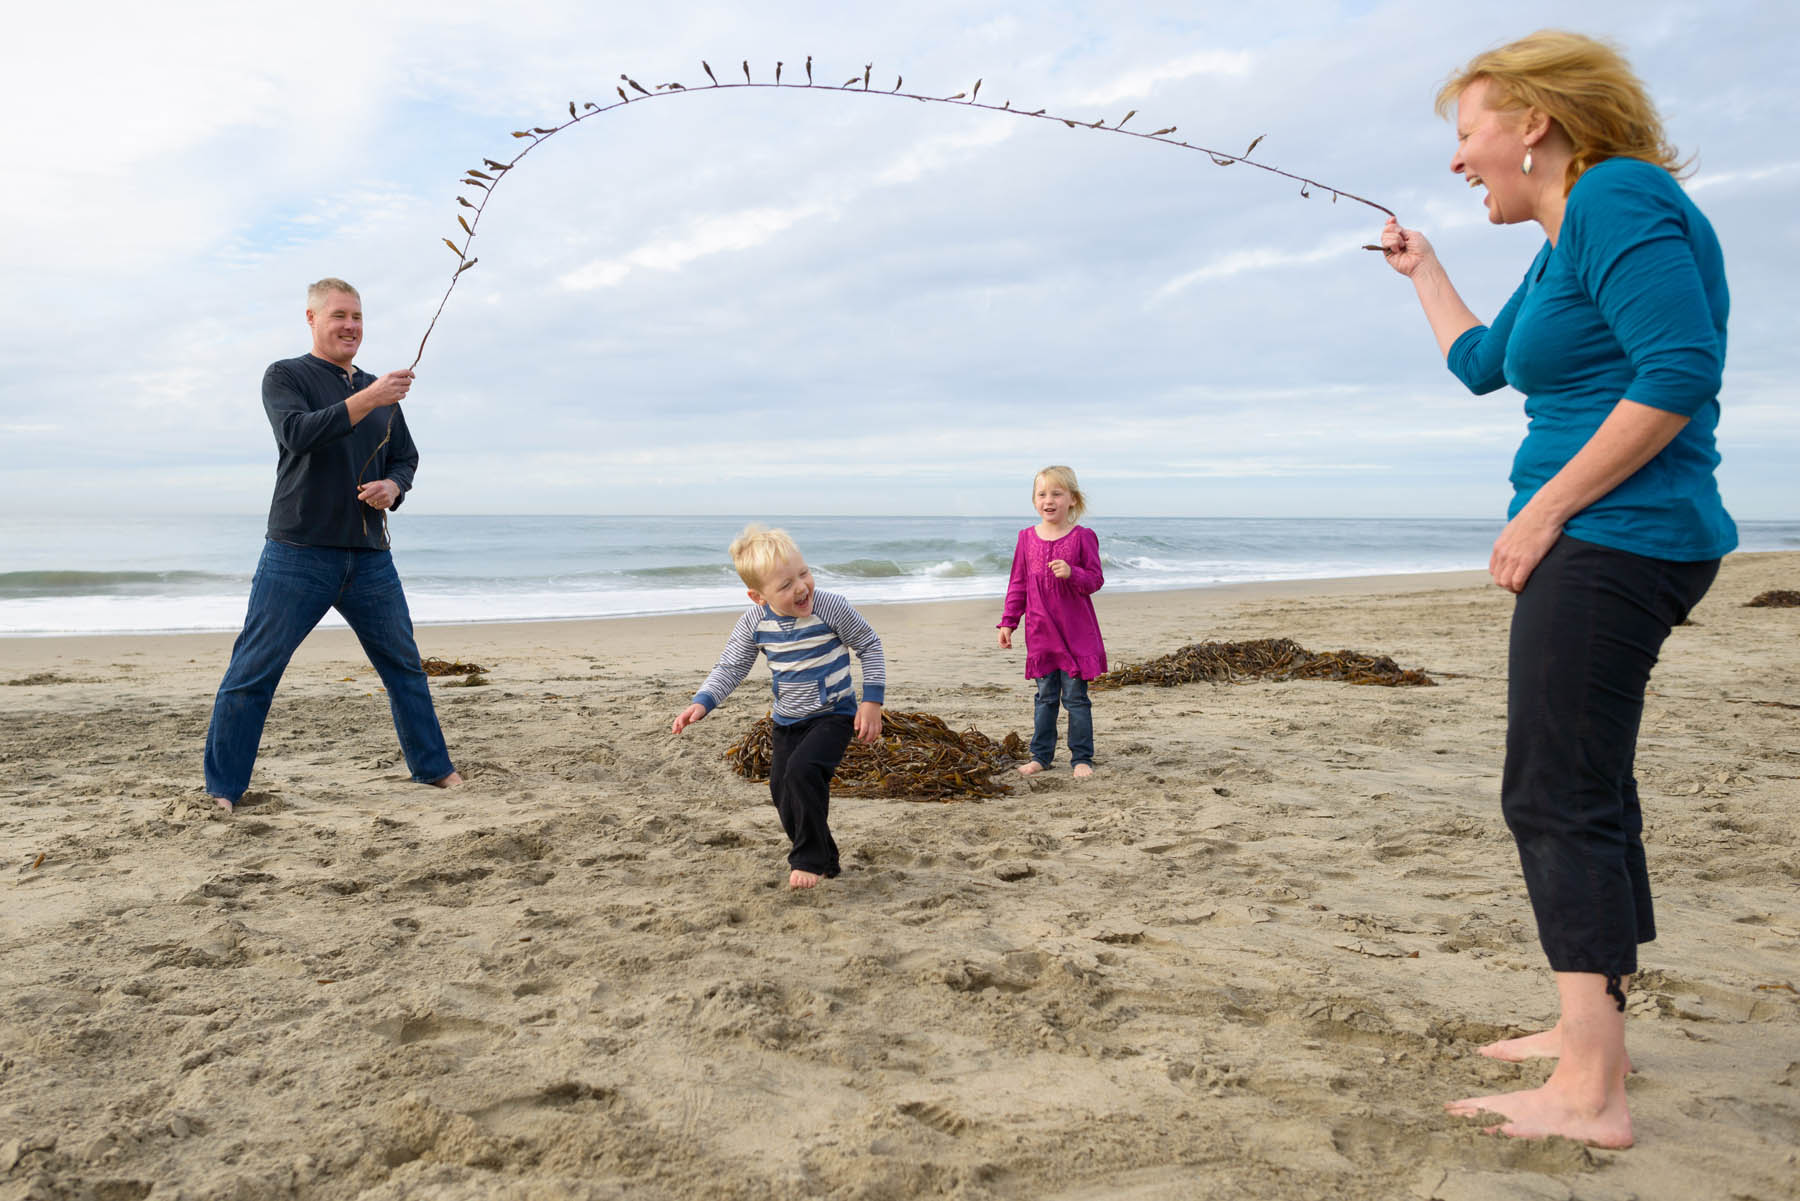 6182_d800b_Darcey_Drew_and_Kids_Lighthouse_Field_State_Beach_Santa_Cruz_Family_Photography.jpg